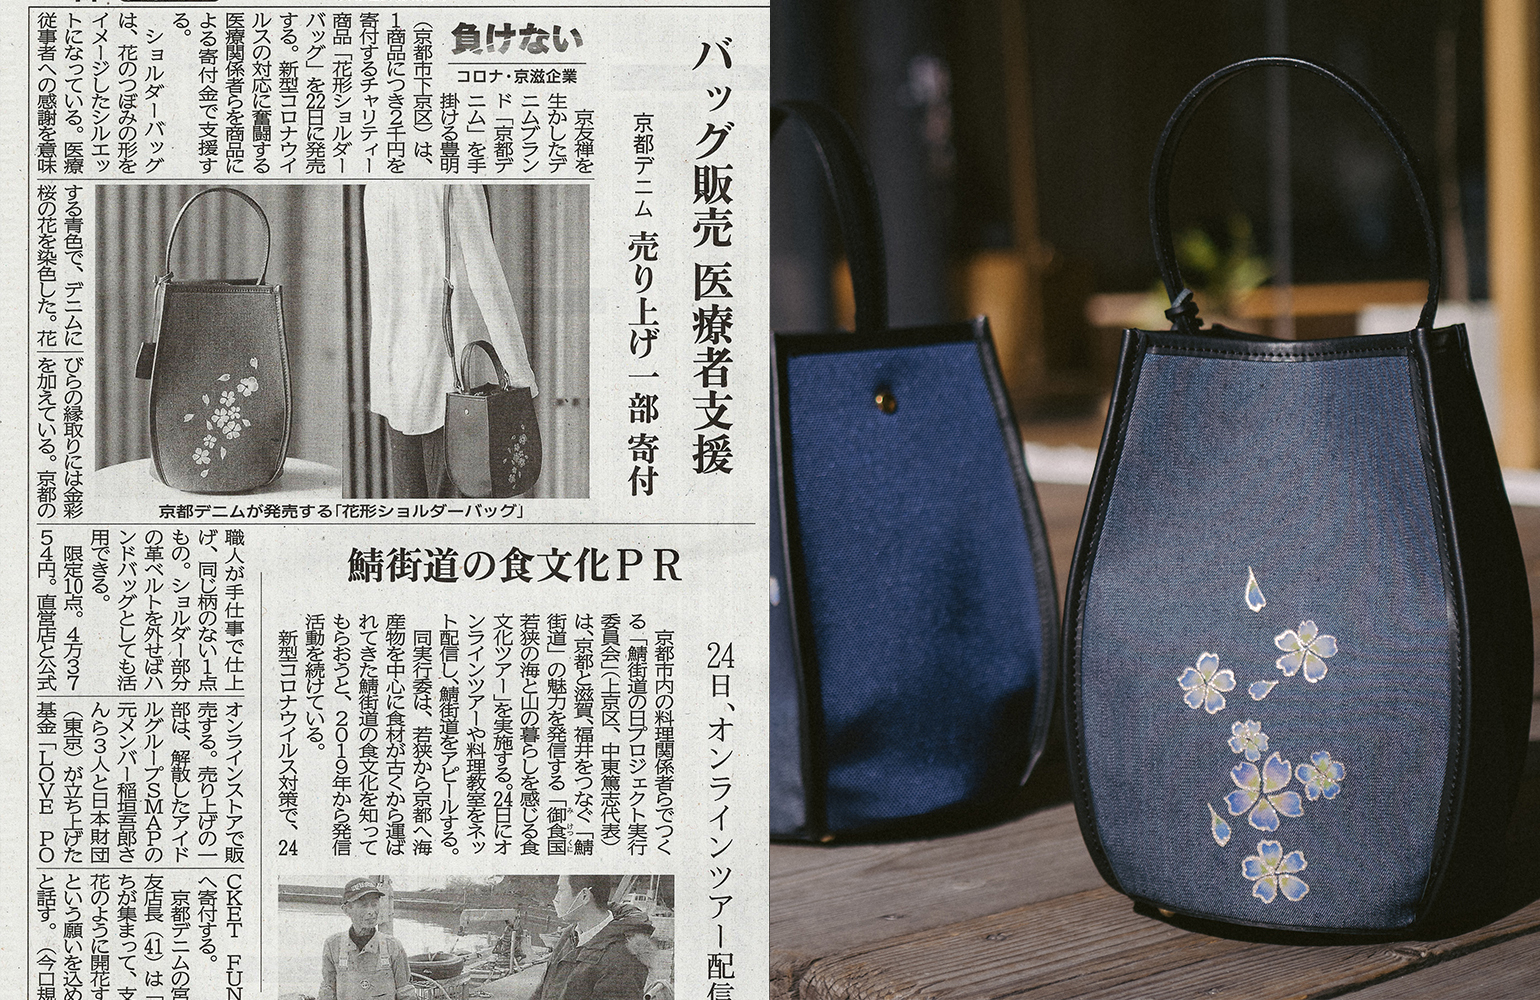 2021-01-22 Kyoto Shimbun_Flower-shaped shoulder bag